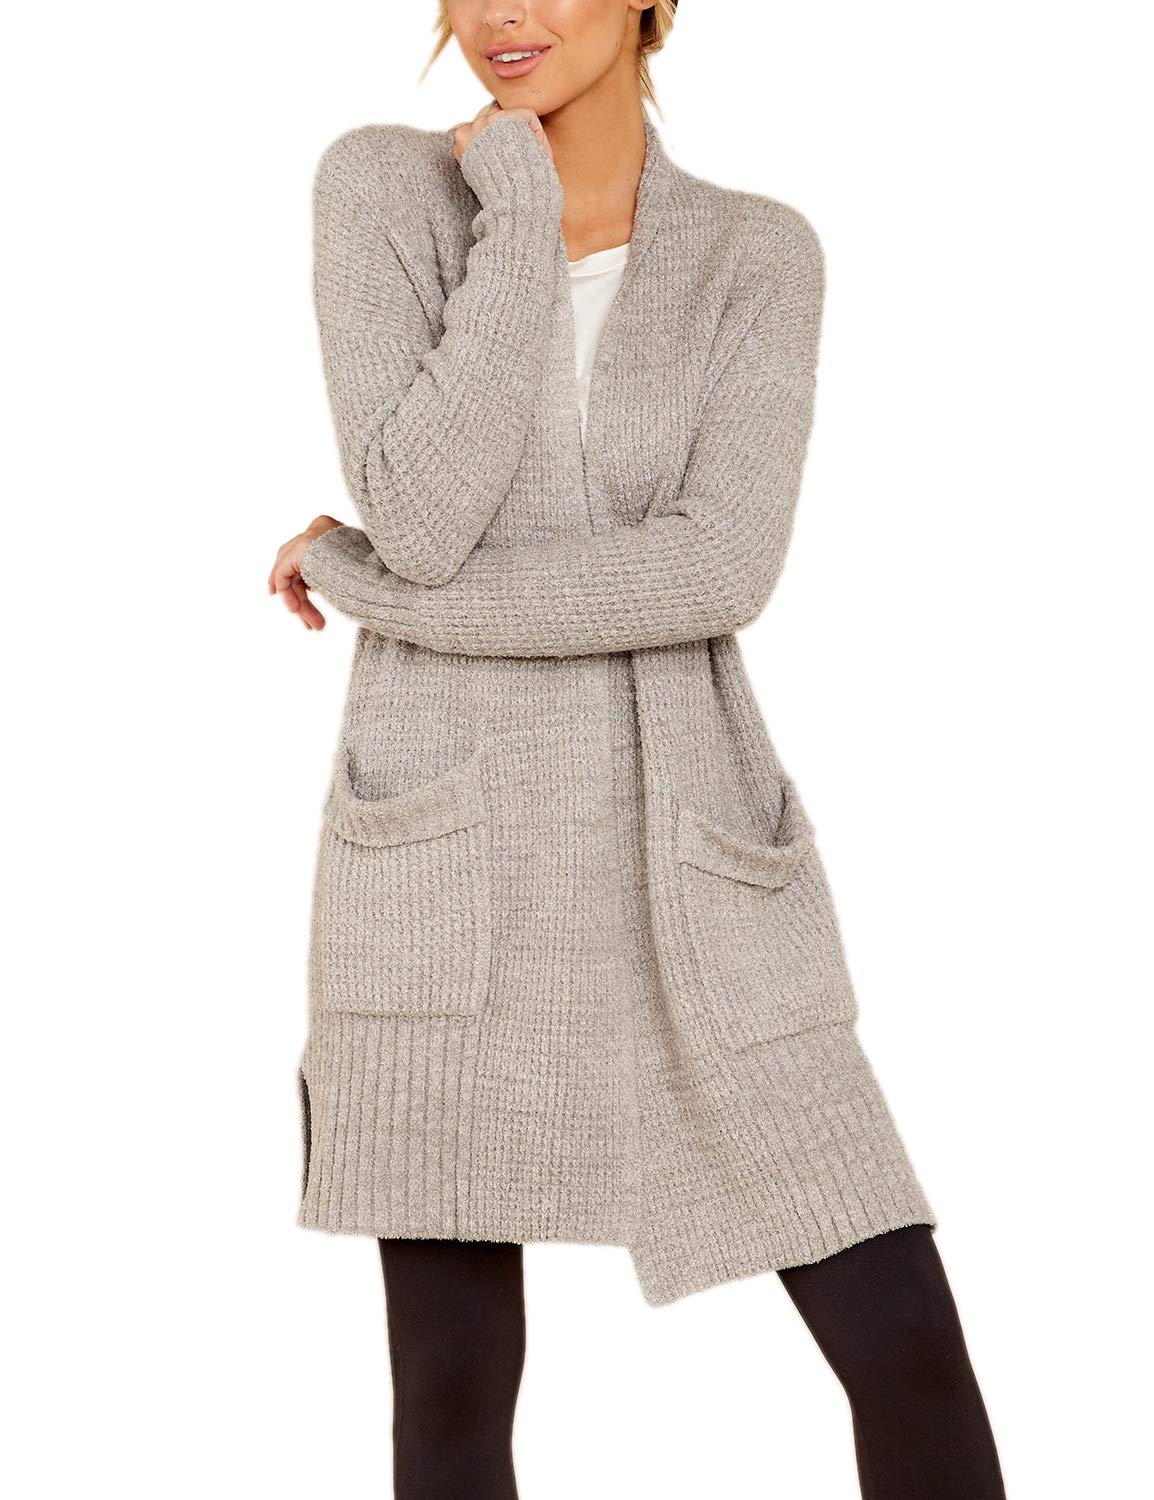 BMJL Women's Long Sleeved Cardigan Solid Color Sweater Warm Side Slits Longline with Pockets Grey